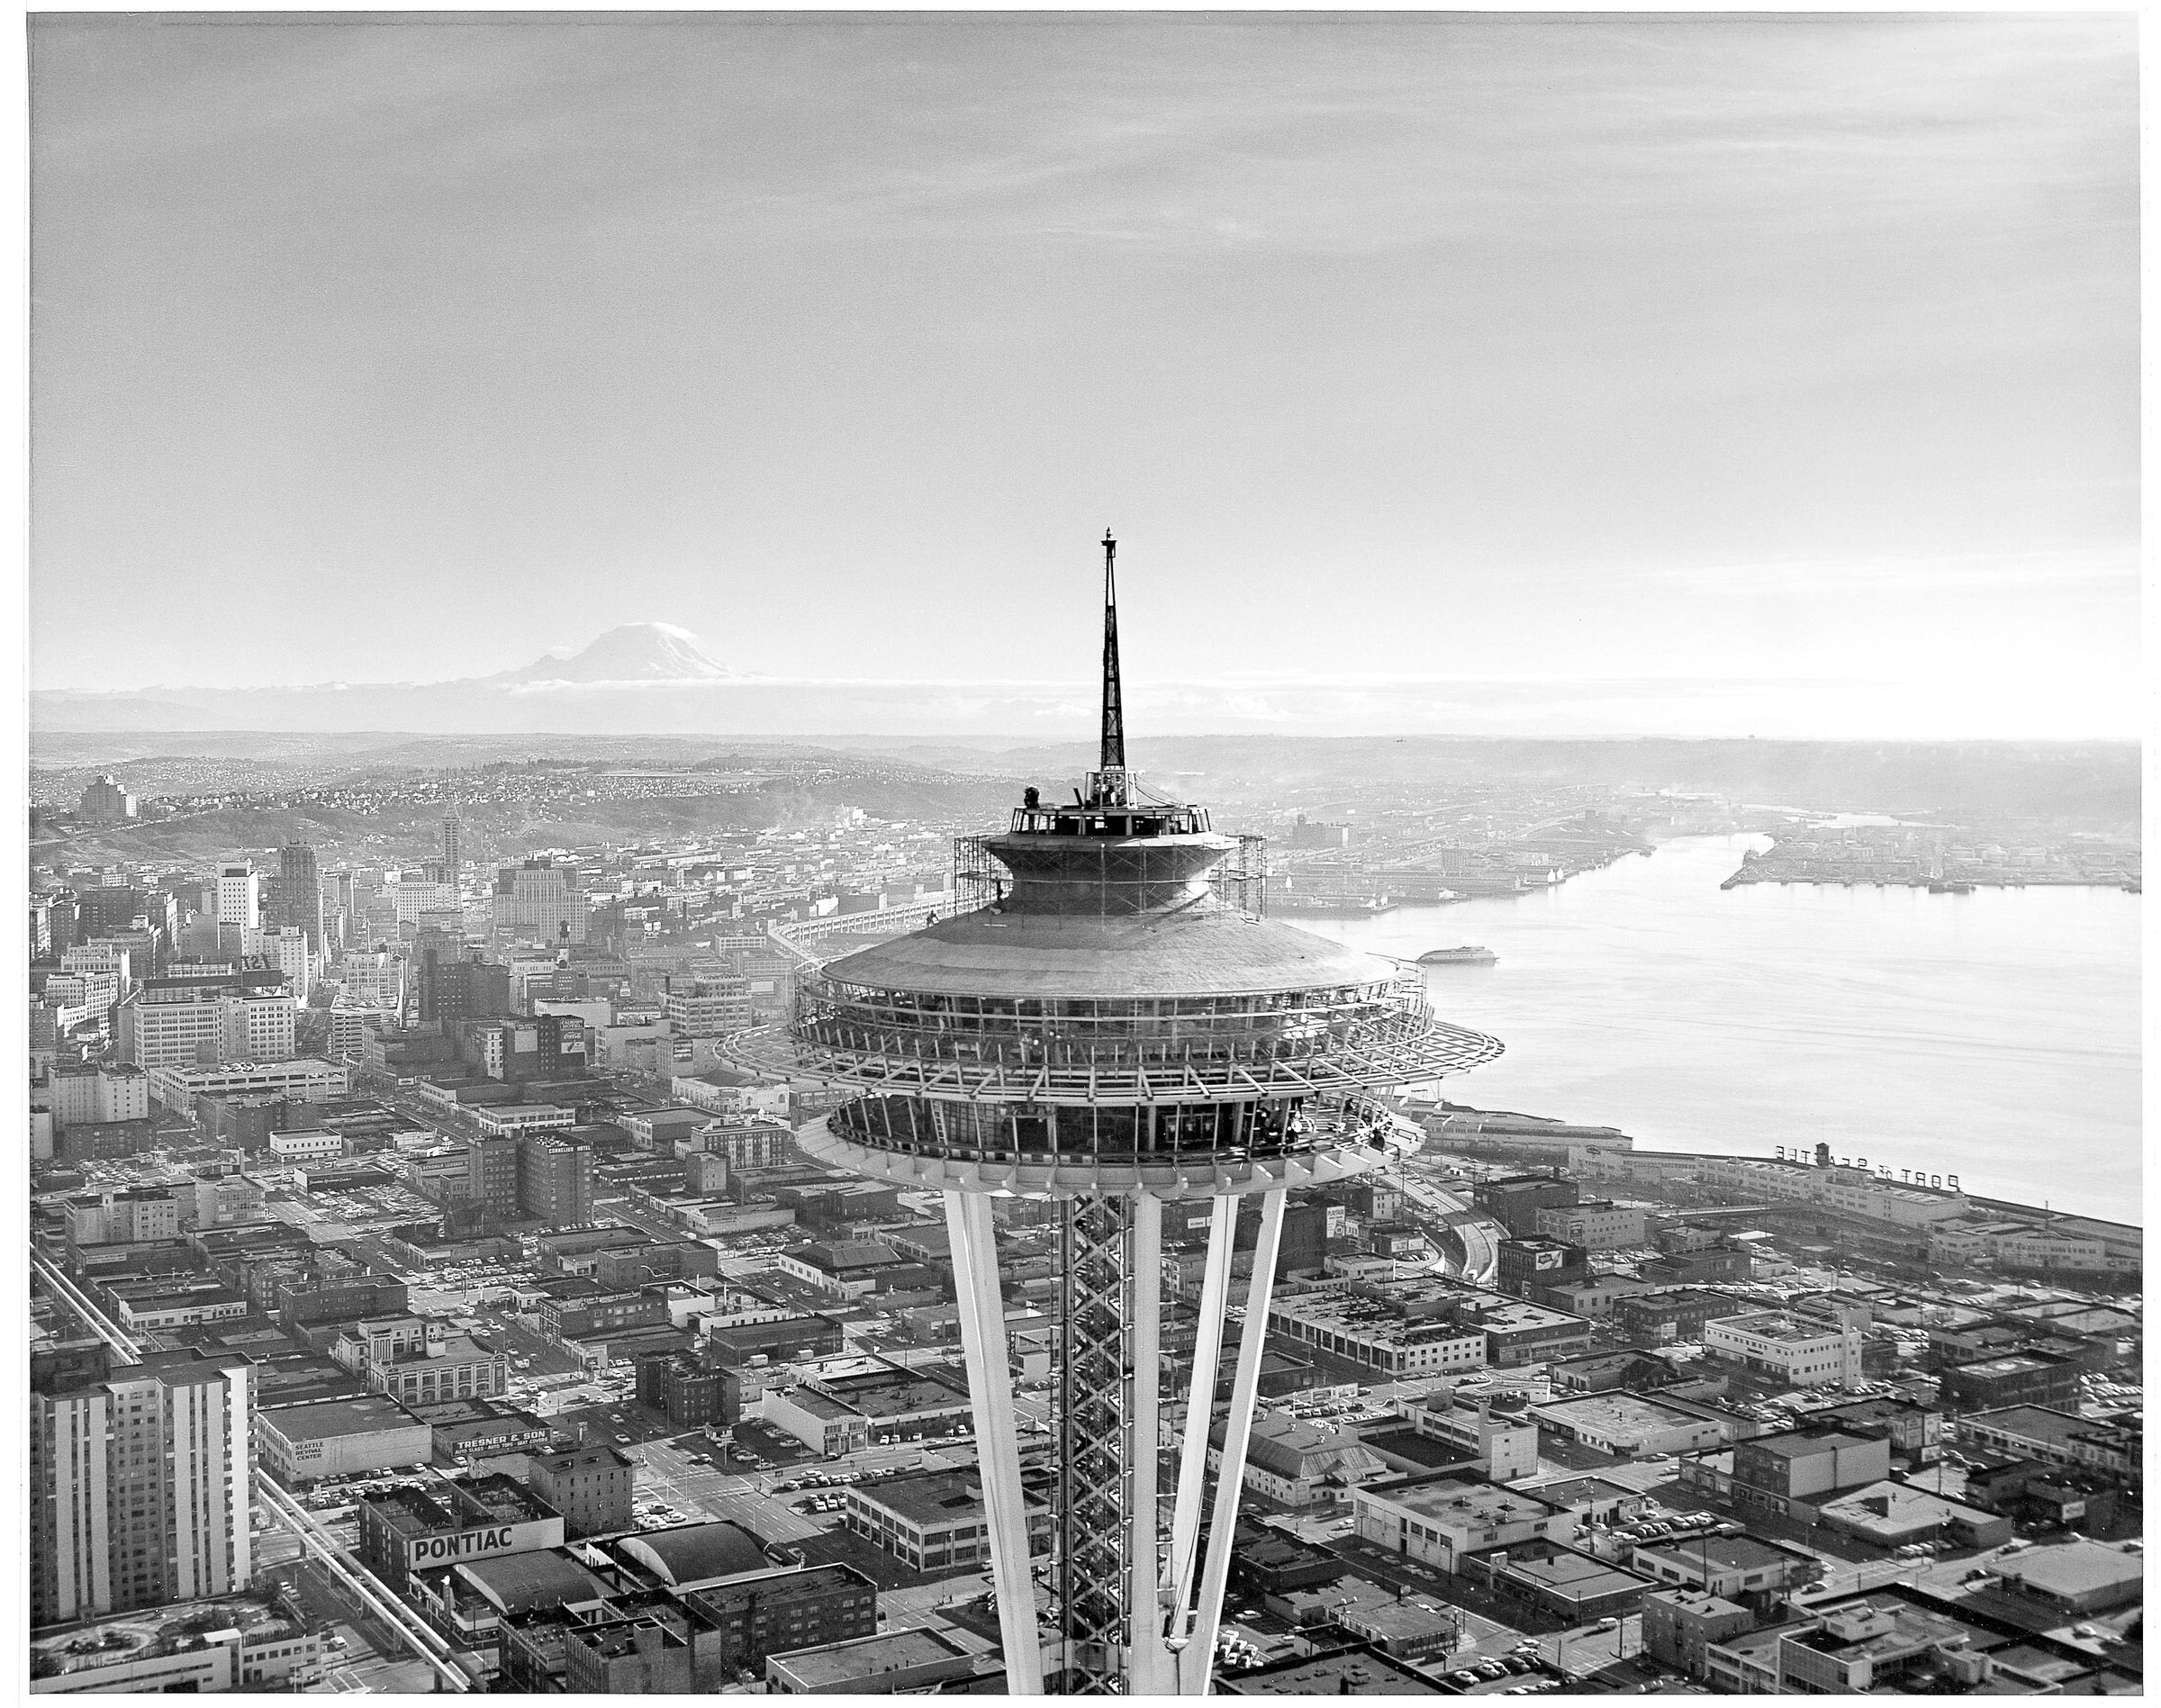 Space needle was once considered a monstrosity by Built in seattle